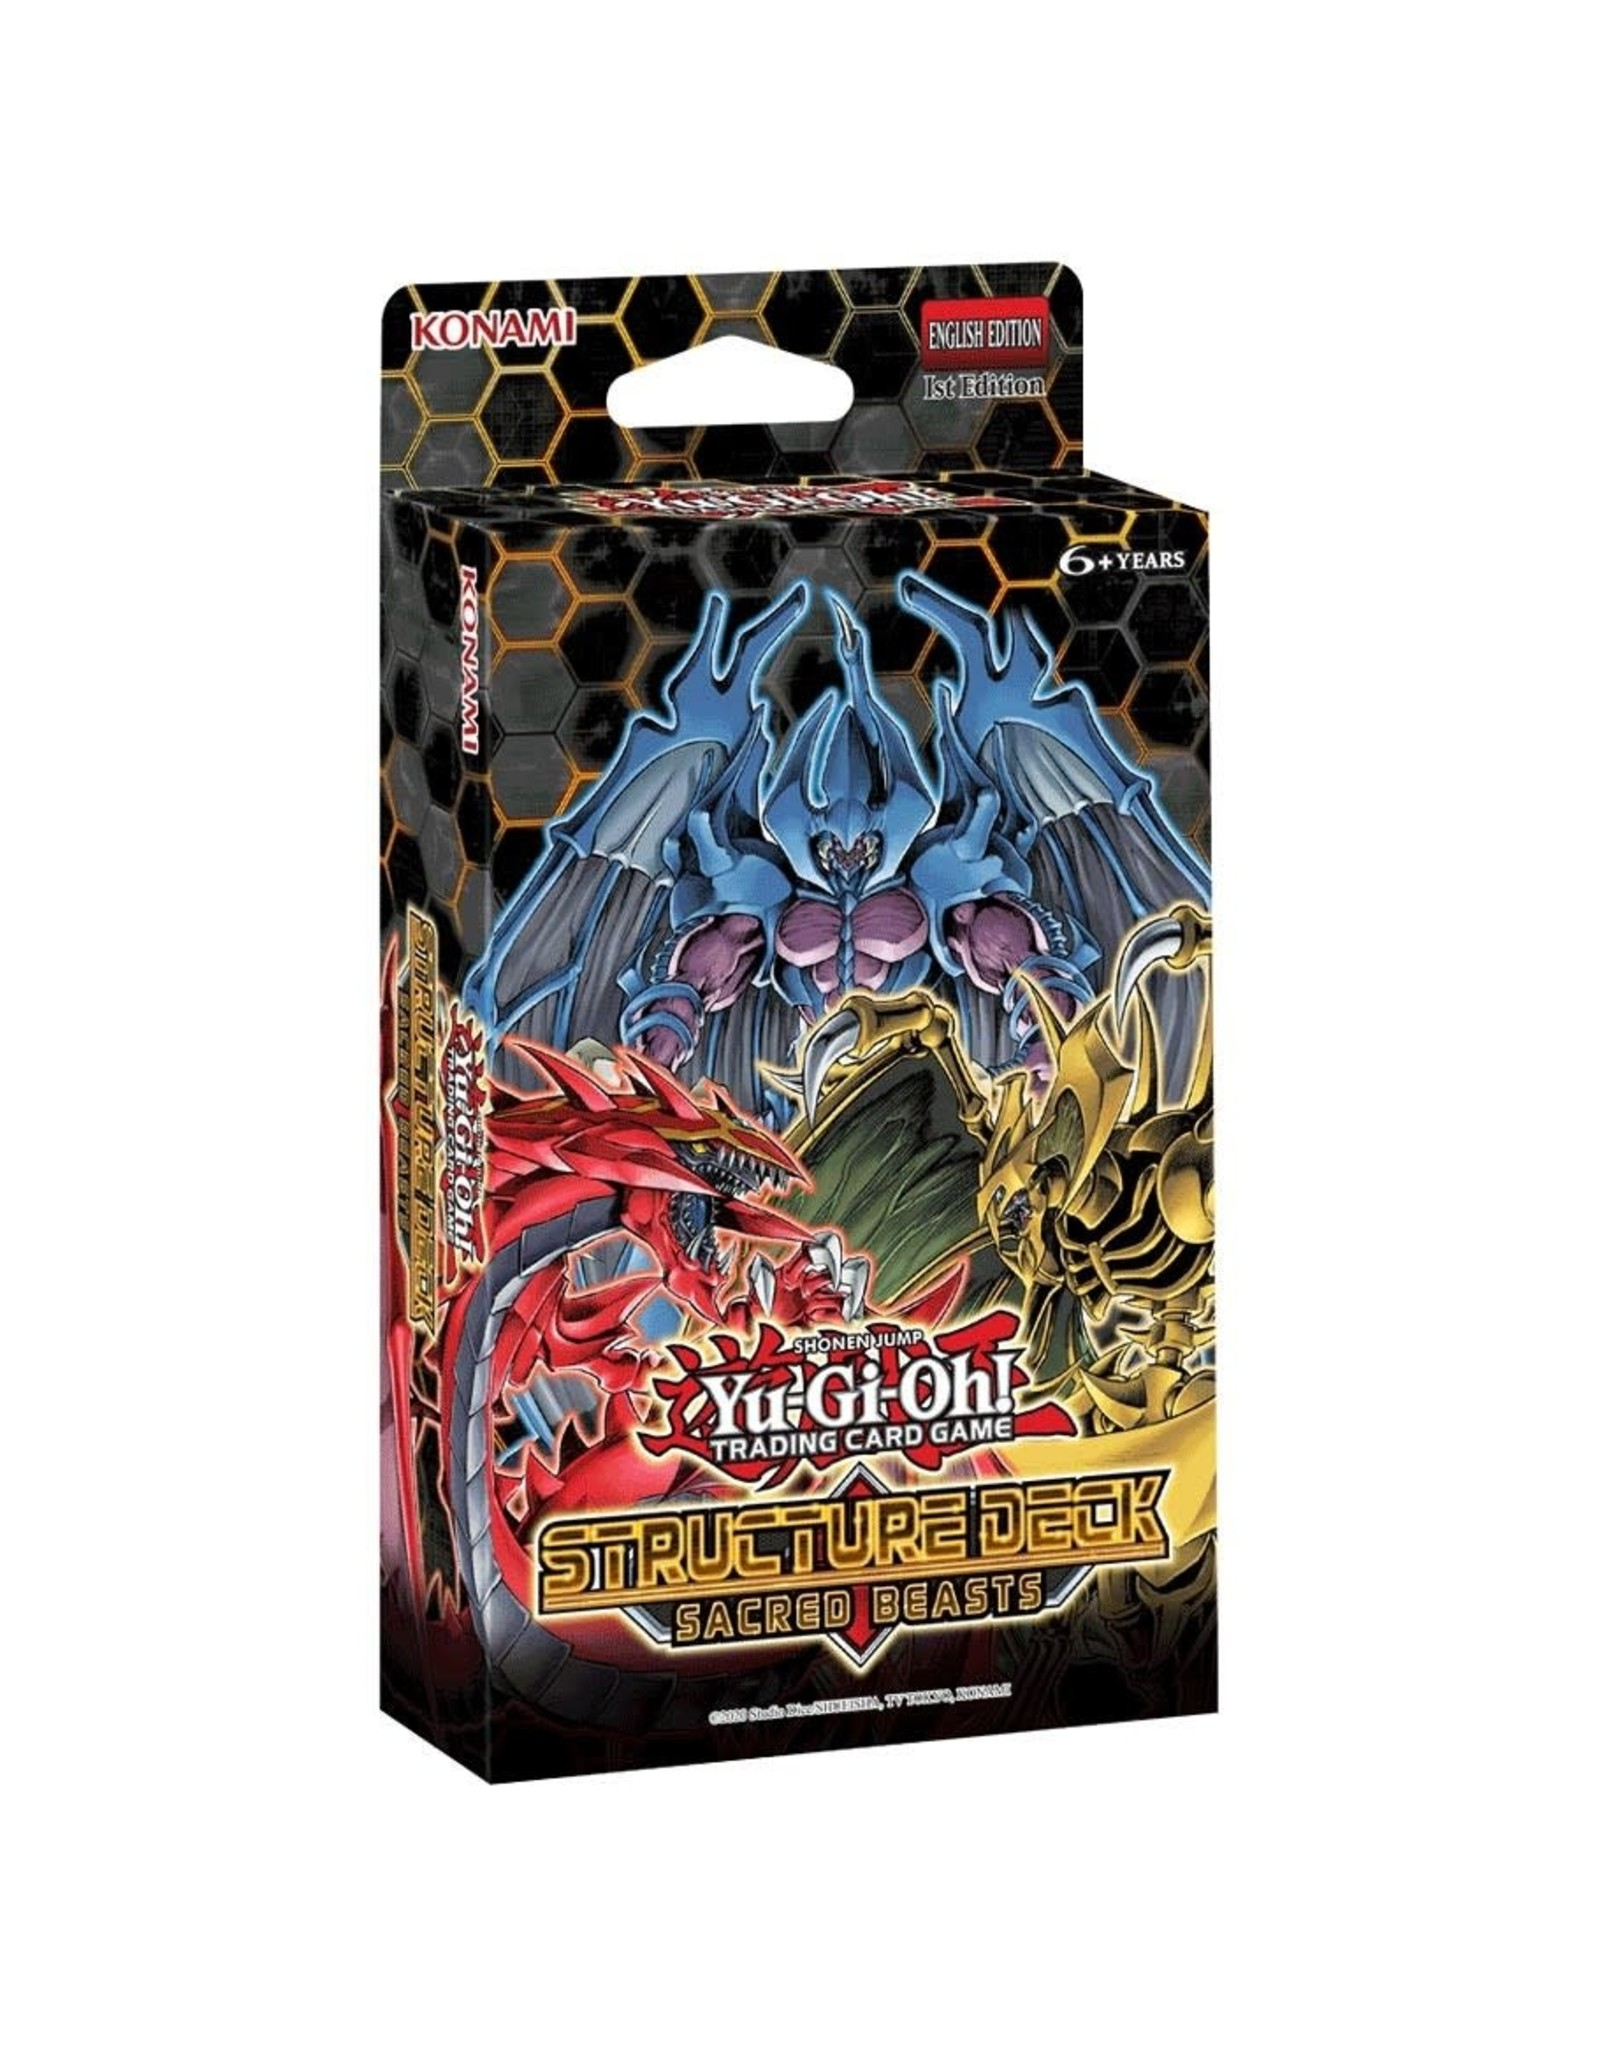 Sacred Beasts Structure Deck PREORDER JULY 10, 2020